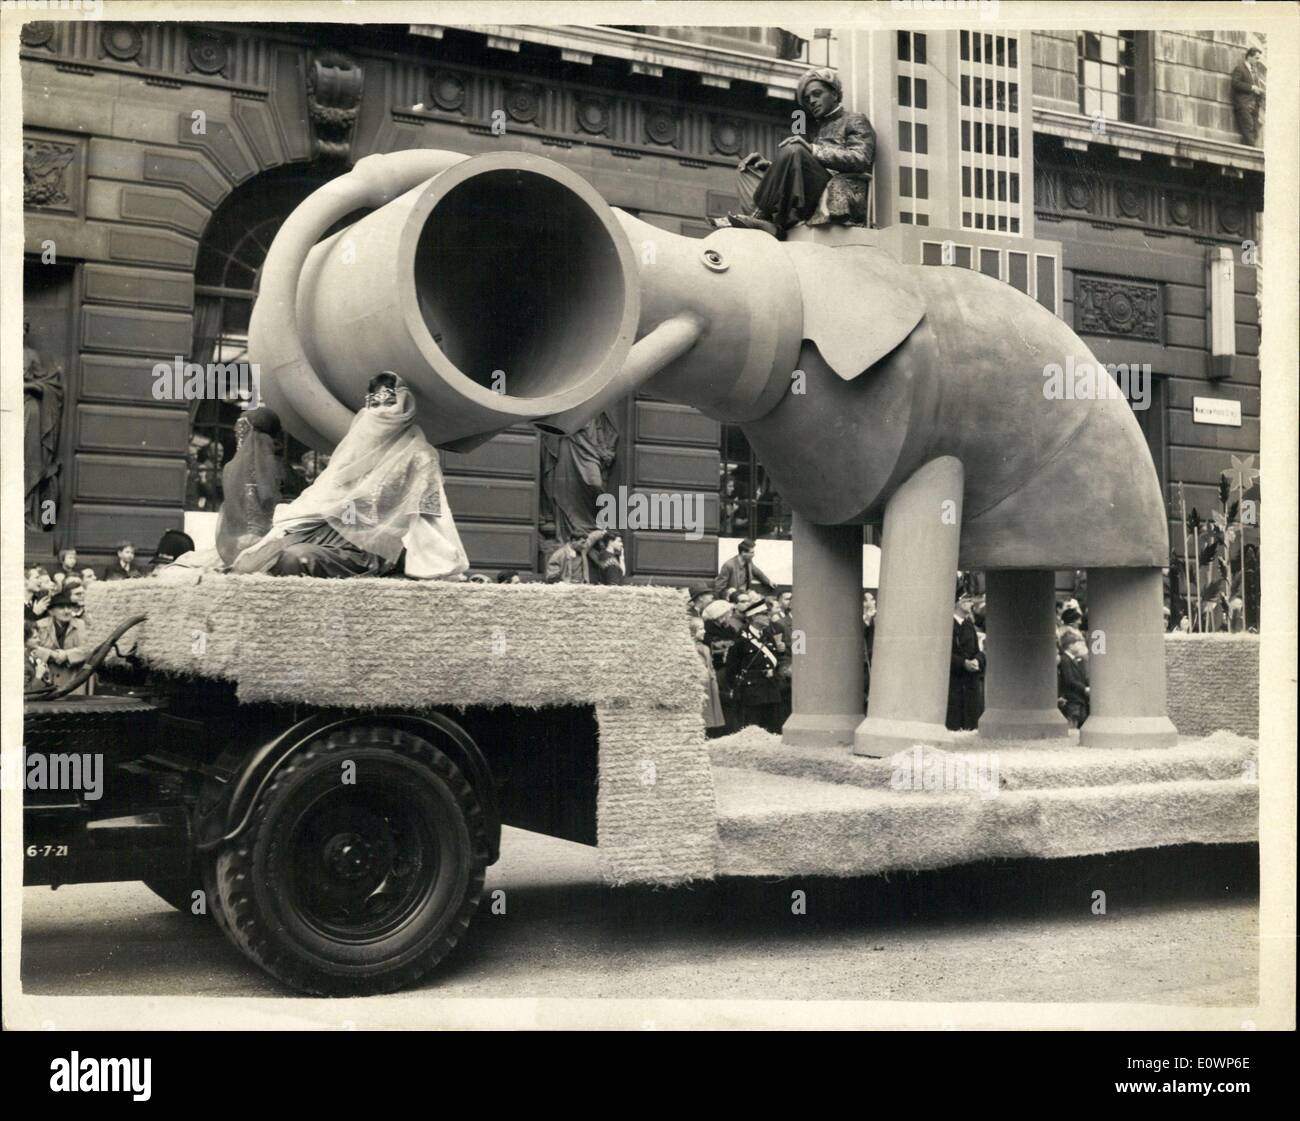 Nov. 10, 1963 - Elephant Trollope Colls Ltd. Lord Mayor's Show in the City of London. - Stock Image